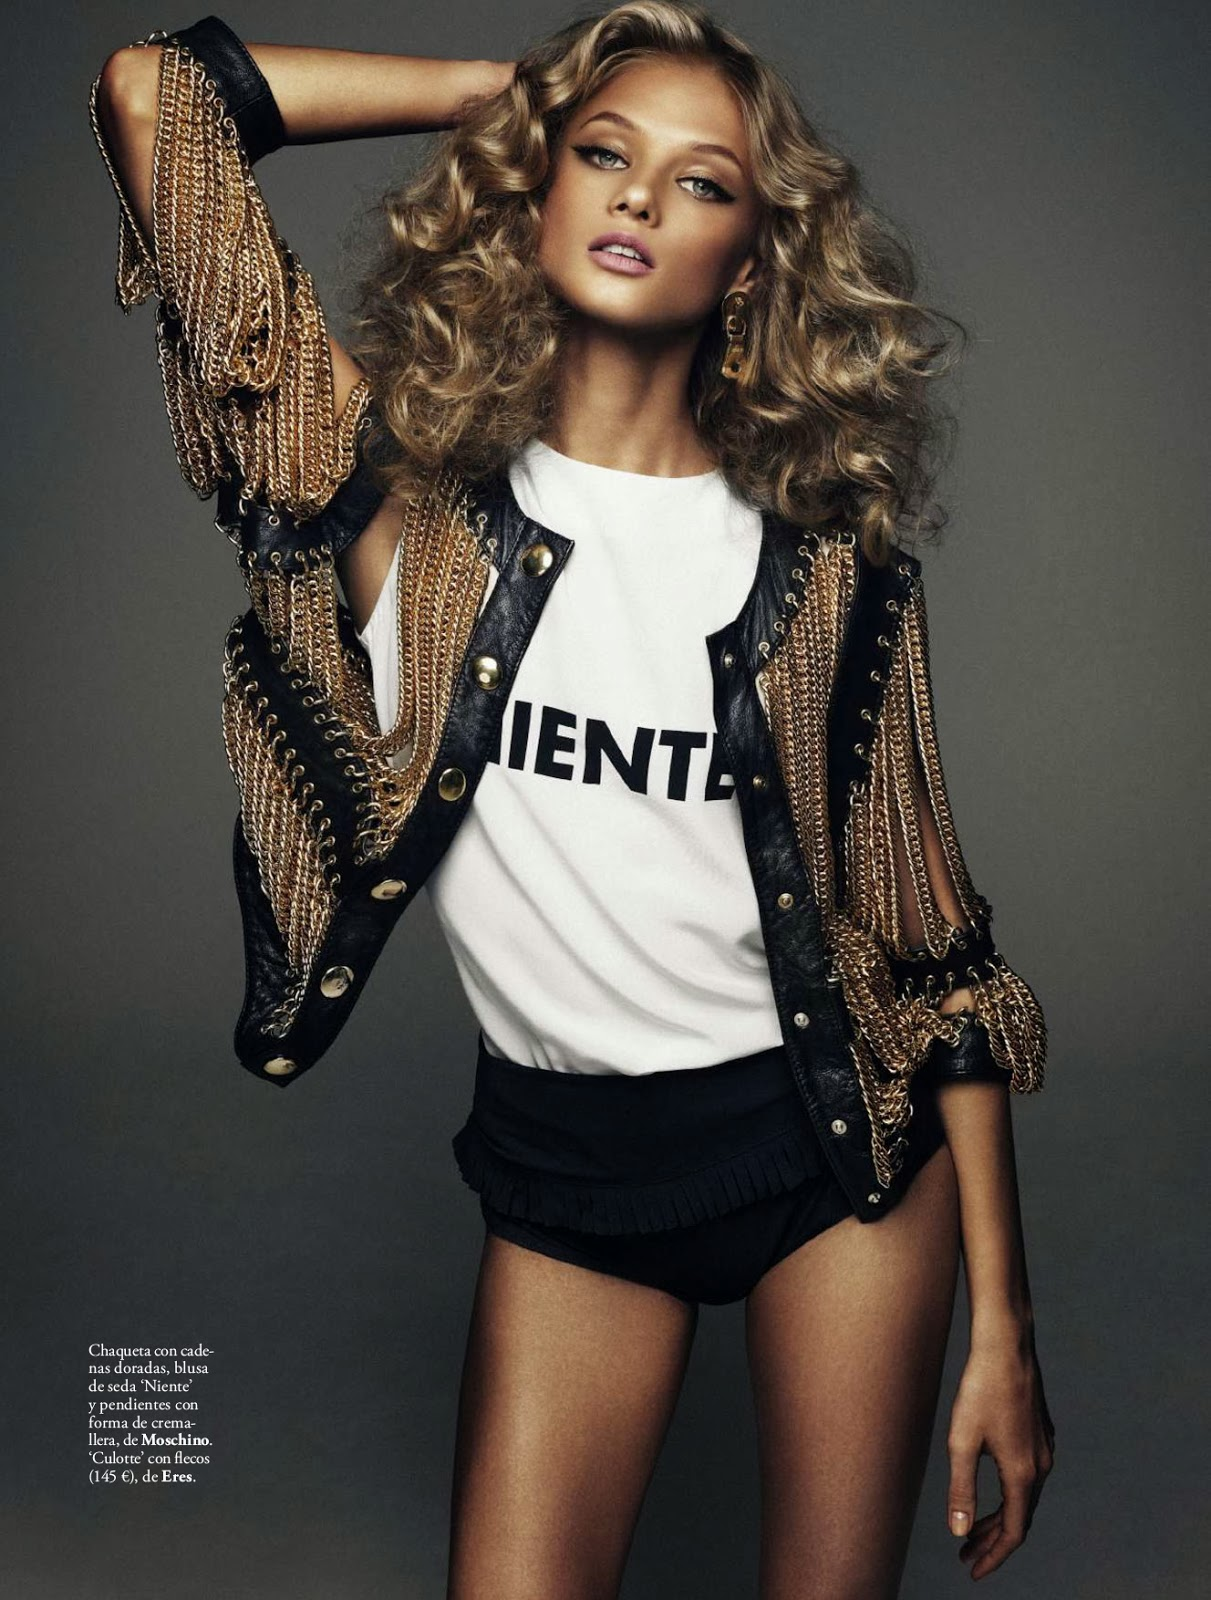 Anna Selezneva HQ Pictures Elle Spain Magazine Photoshoot March 2014